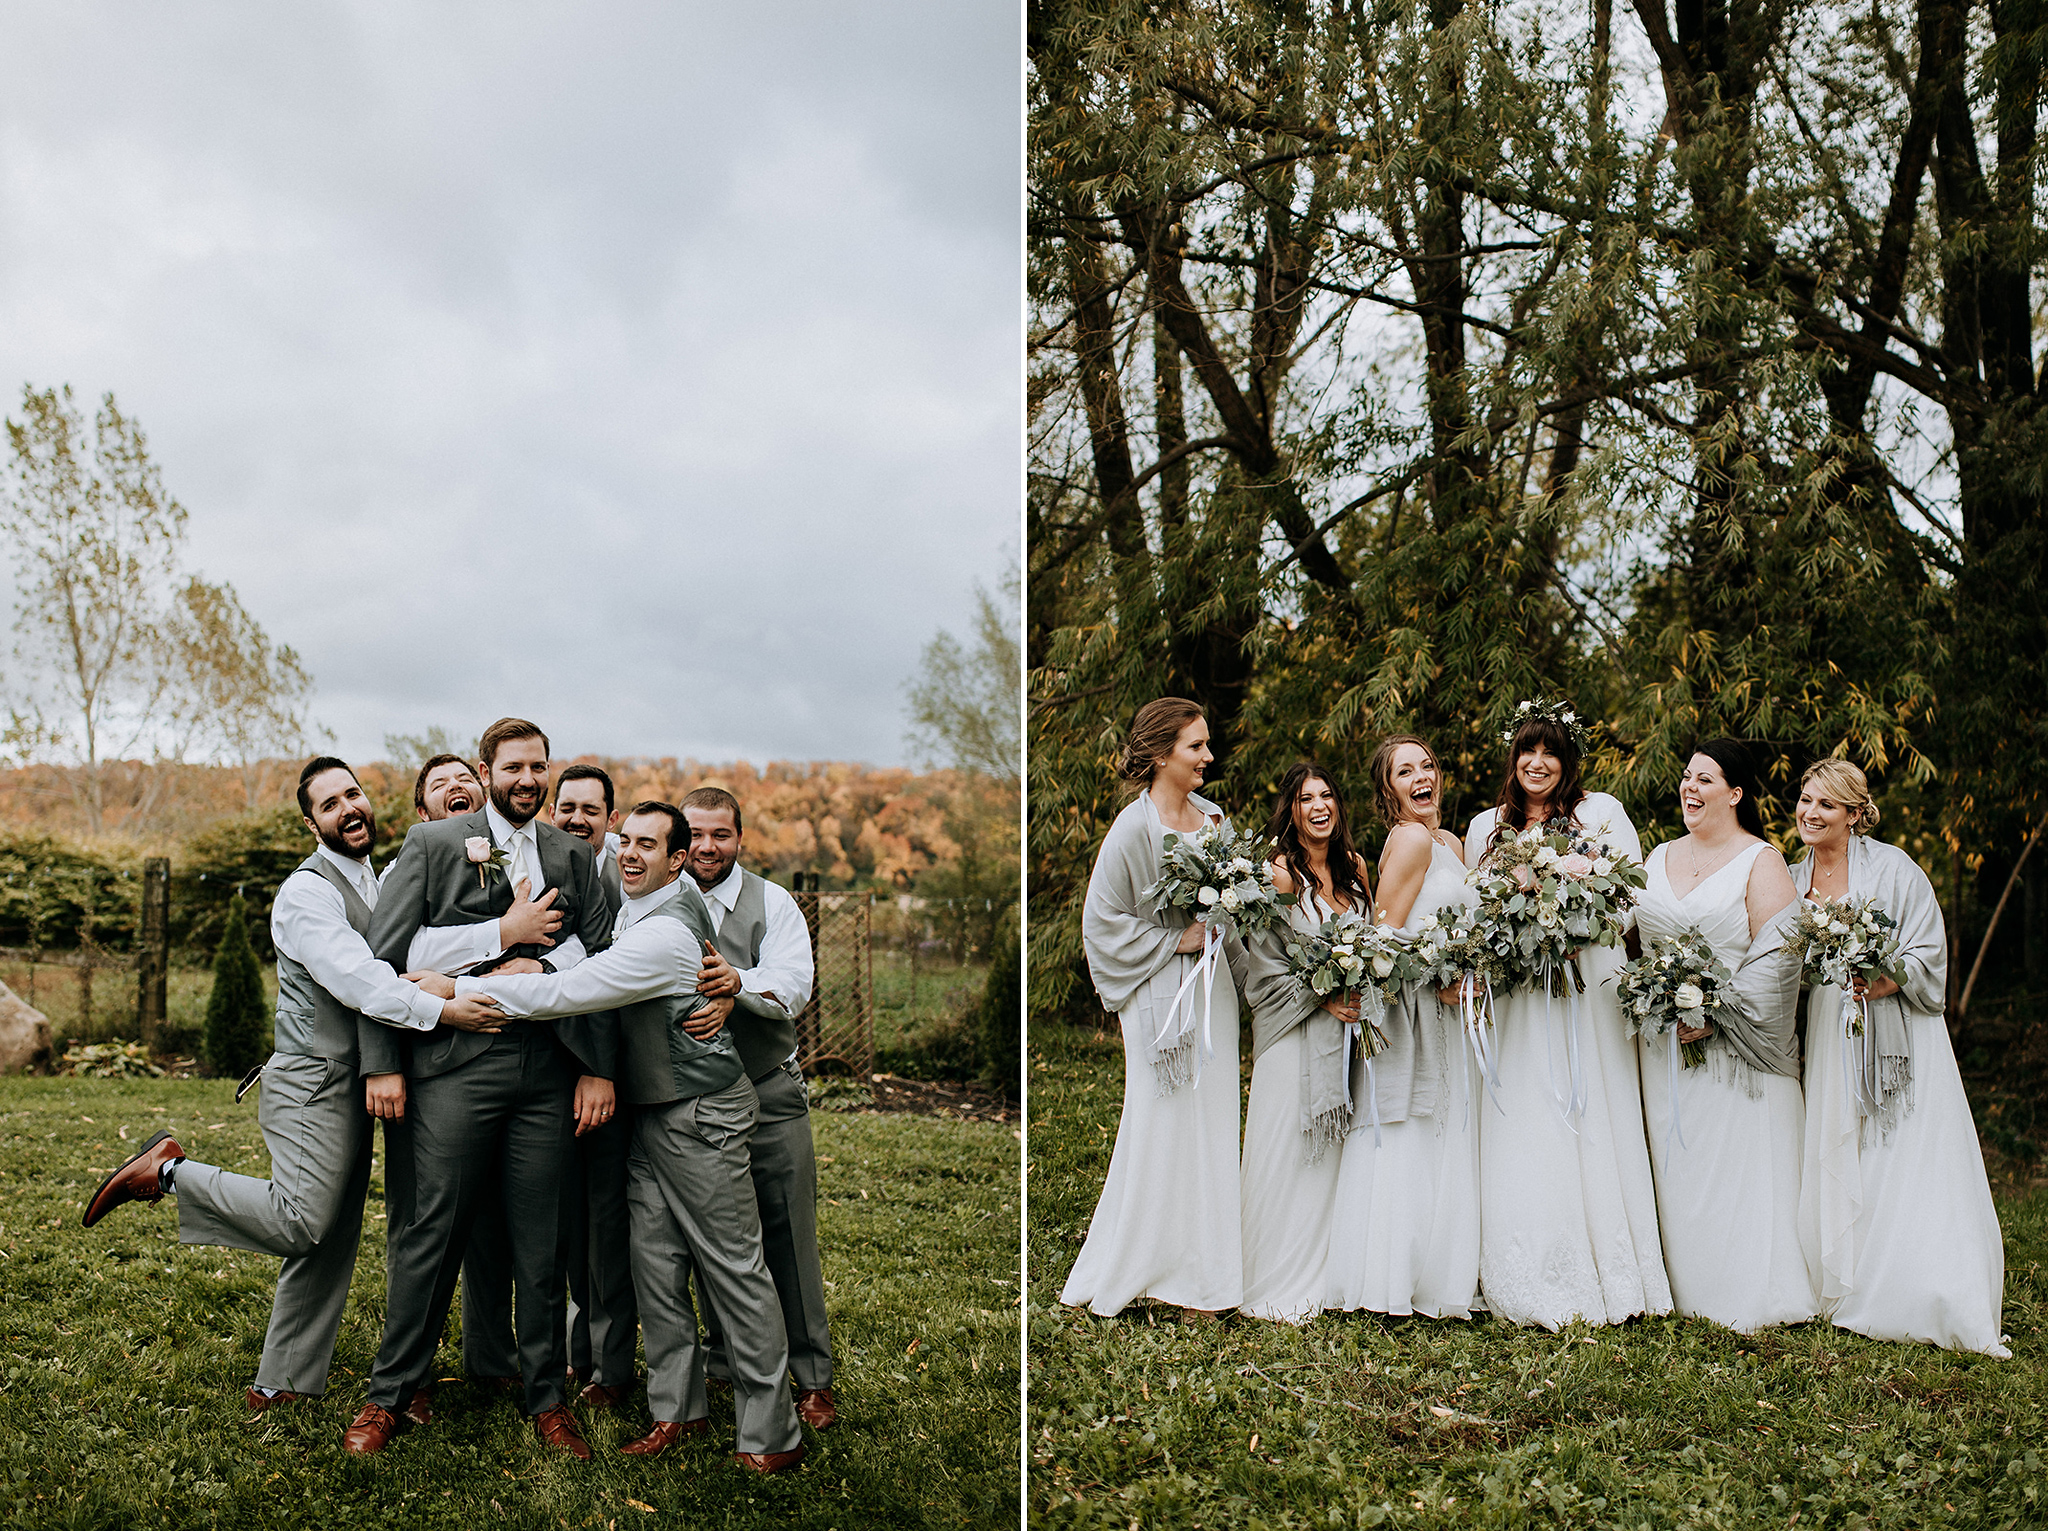 fun wedding party photos at meaford barn wedding